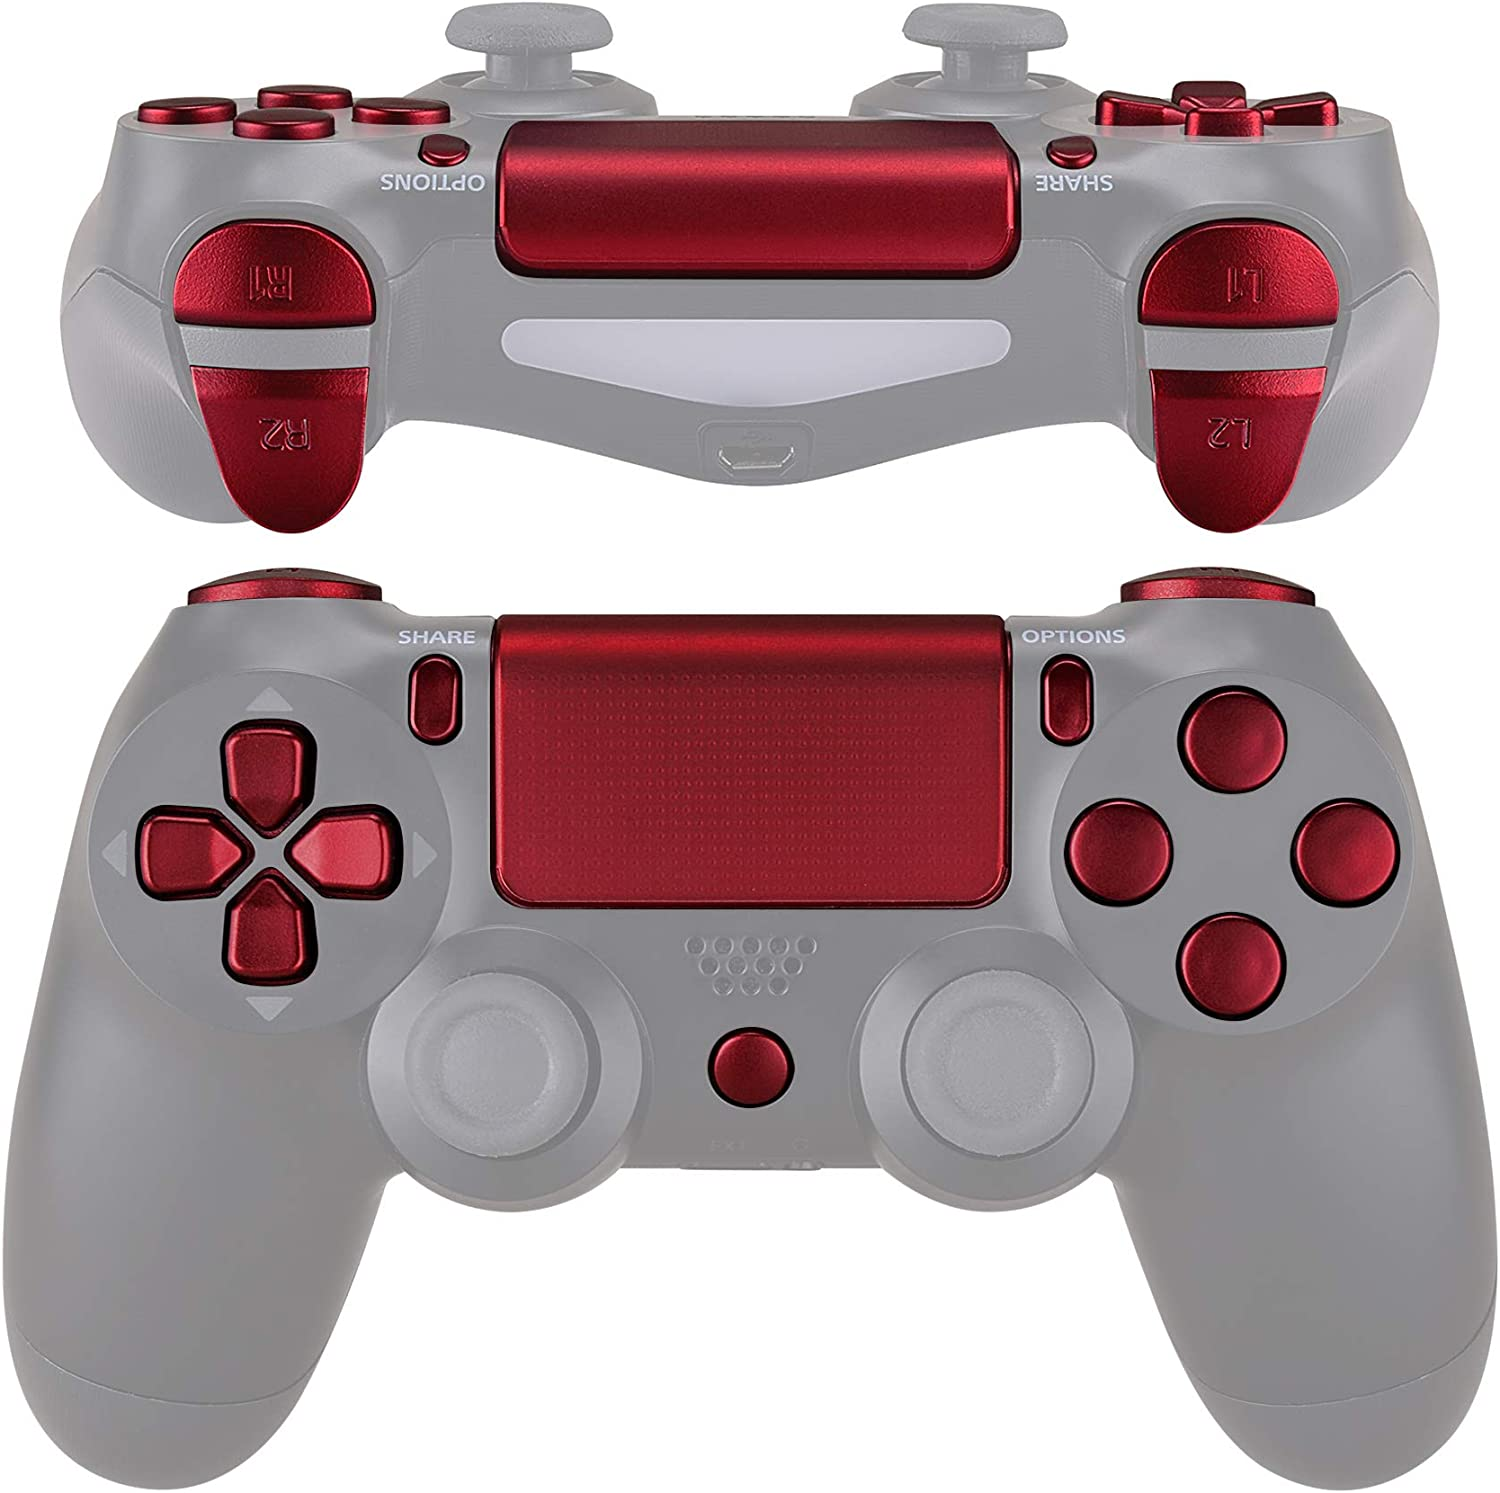 eXtremeRate Replacement D-pad R1 L1 R2 L2 Trigger Touchpad Action Home Share Options Buttons, Scarlet Red Full Set Buttons Repair Kits with Tool for Playstation 4 PS4 Slim PS4 Pro CUH-ZCT2 Controller